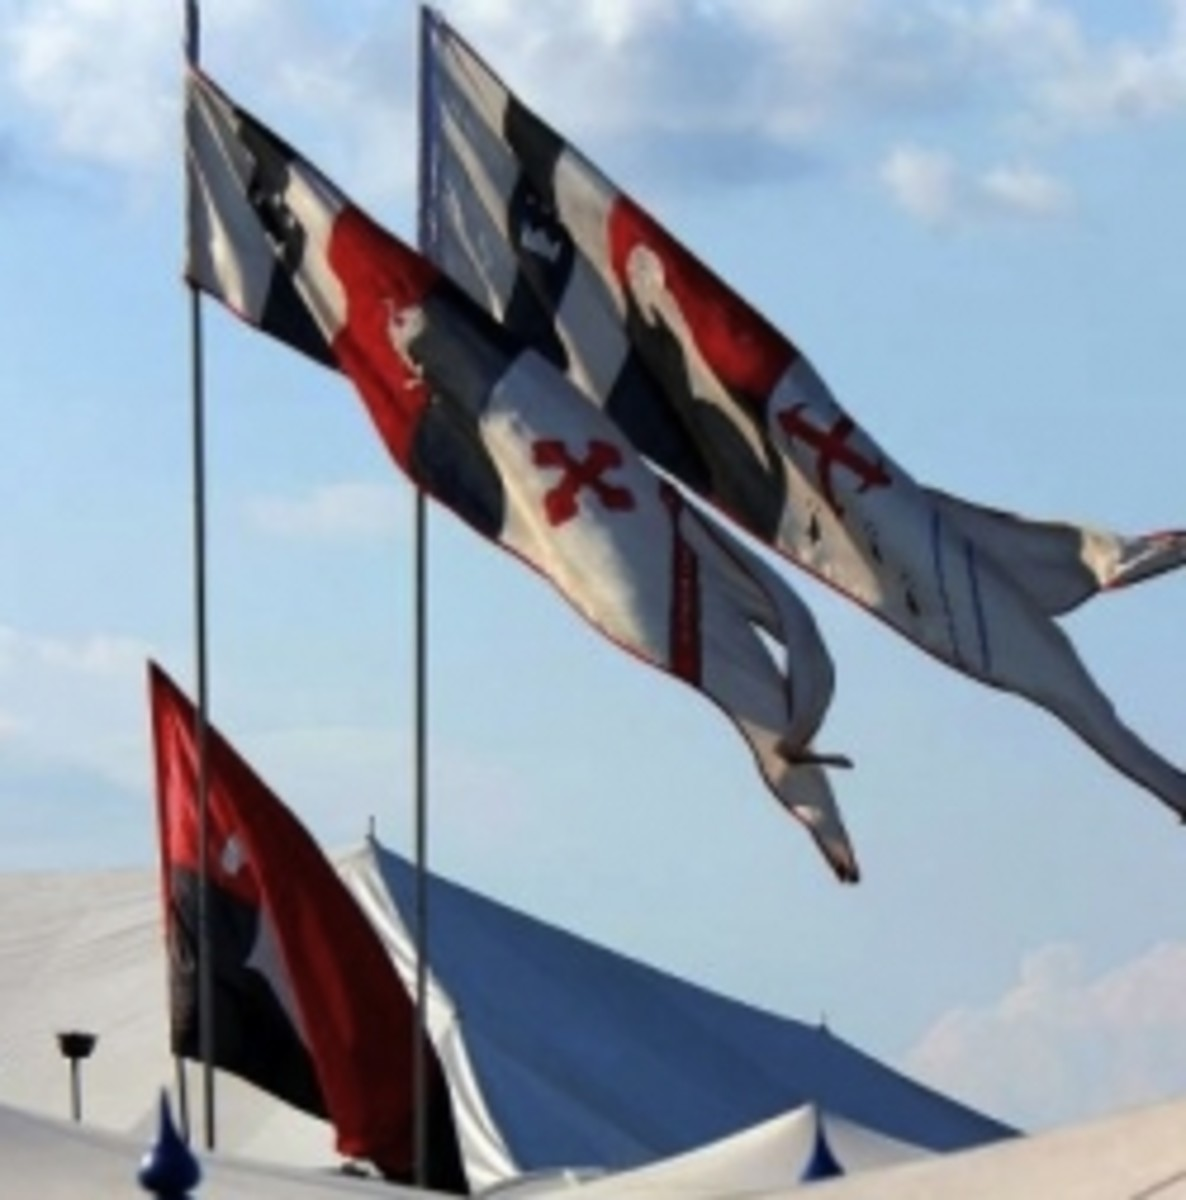 SCA Medieval Rennactment Banners Flying in The Wind